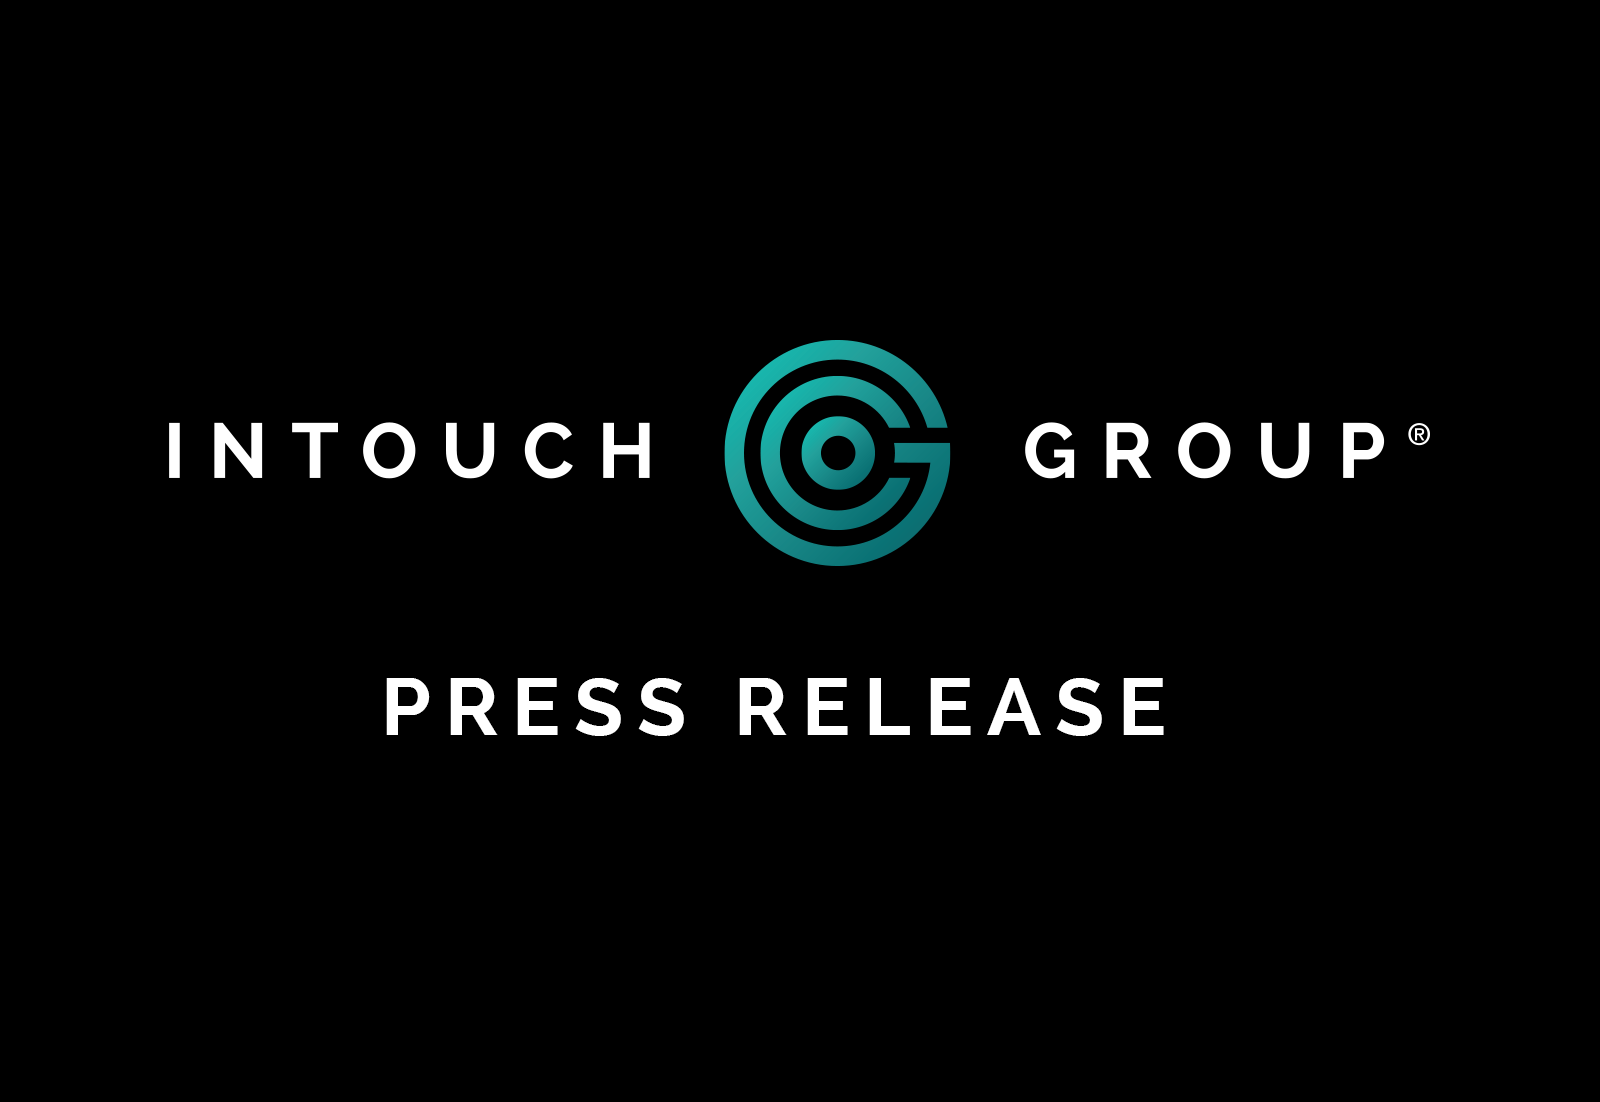 Intouch Group Press Release